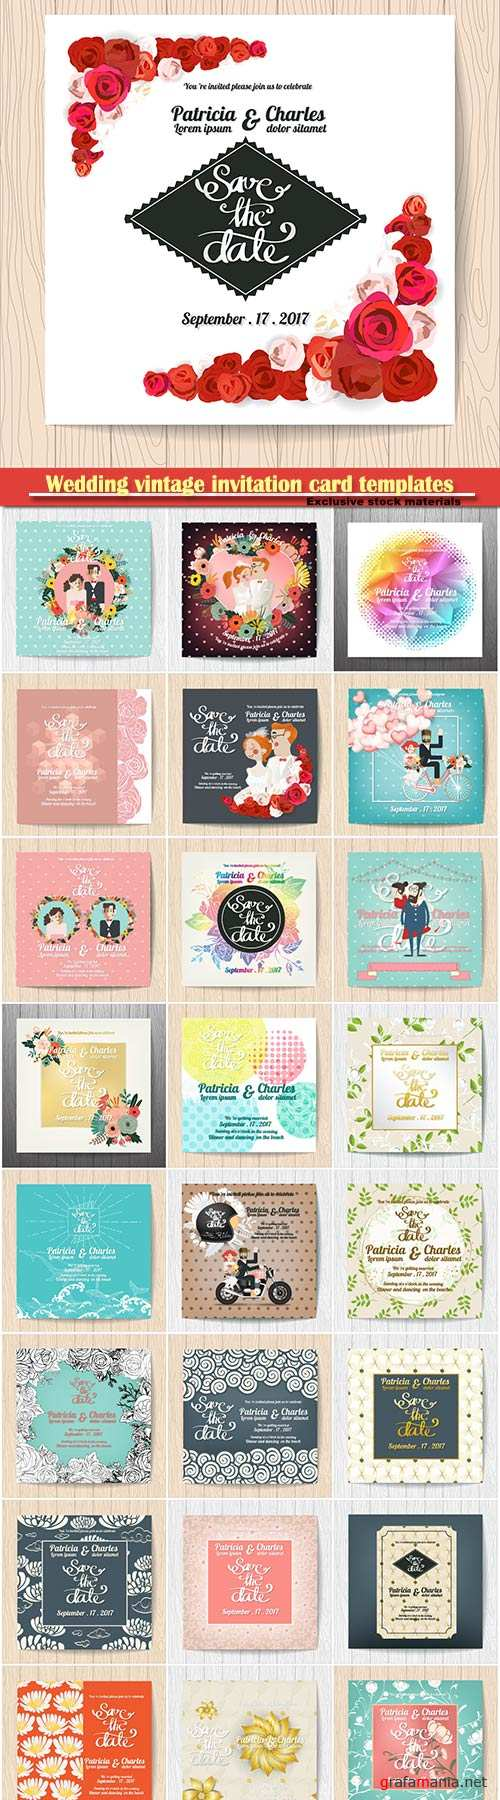 Wedding vintage invitation card templates